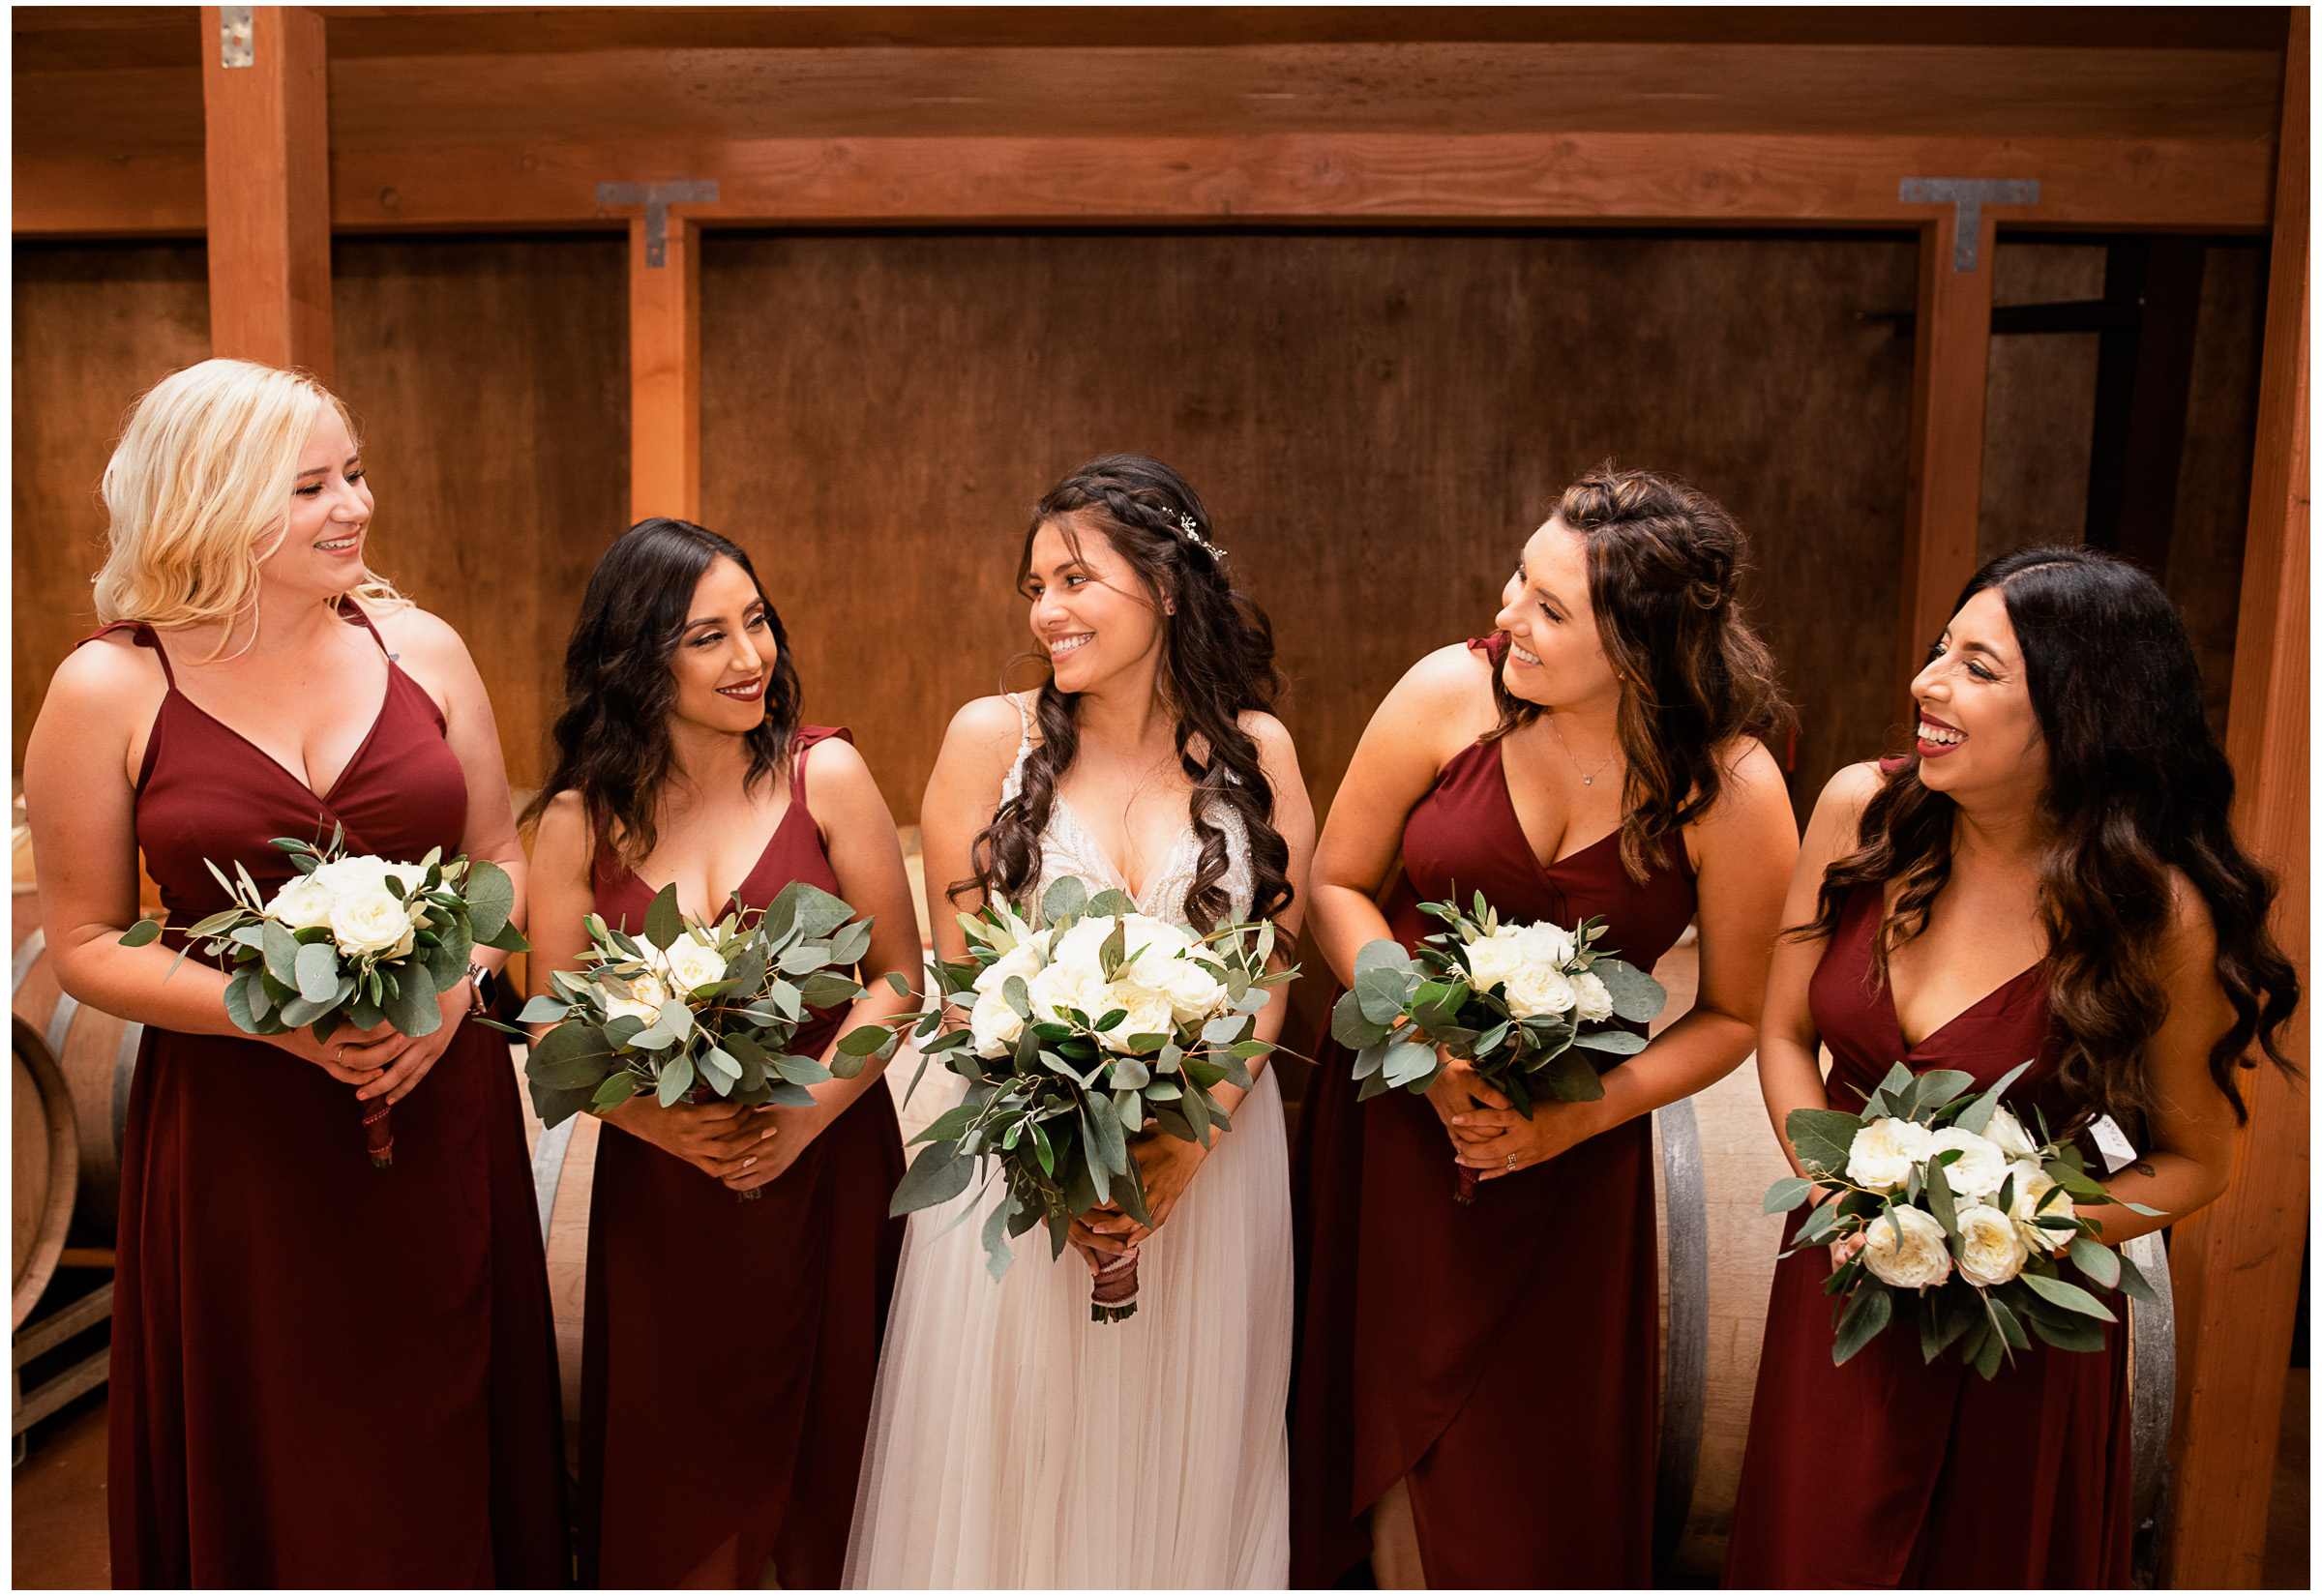 Lincoln Wedding - Sacramento Photographer - Rock Hill Winery - Justin Wilcox Photography - 6.jpg